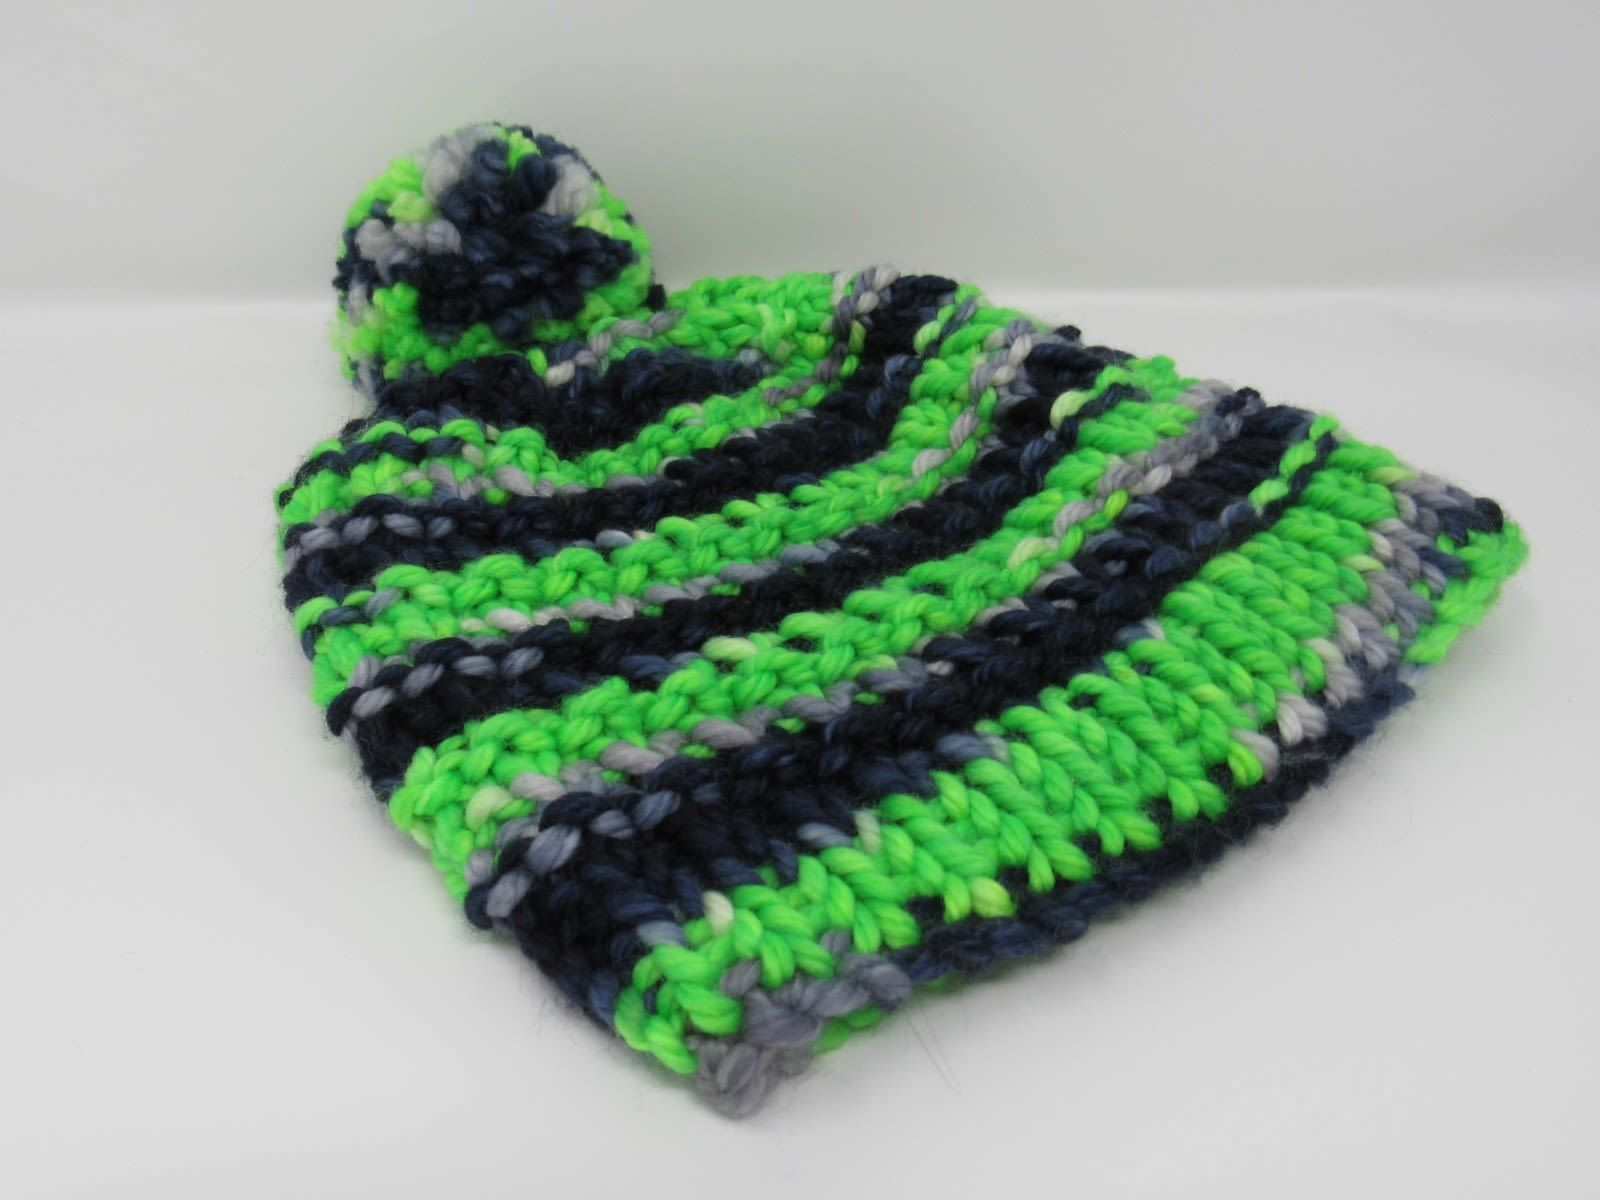 Handcrafted Knitted Hat Seahawks Pom Pom 100% Merino Wool Unisex Kids 4-6